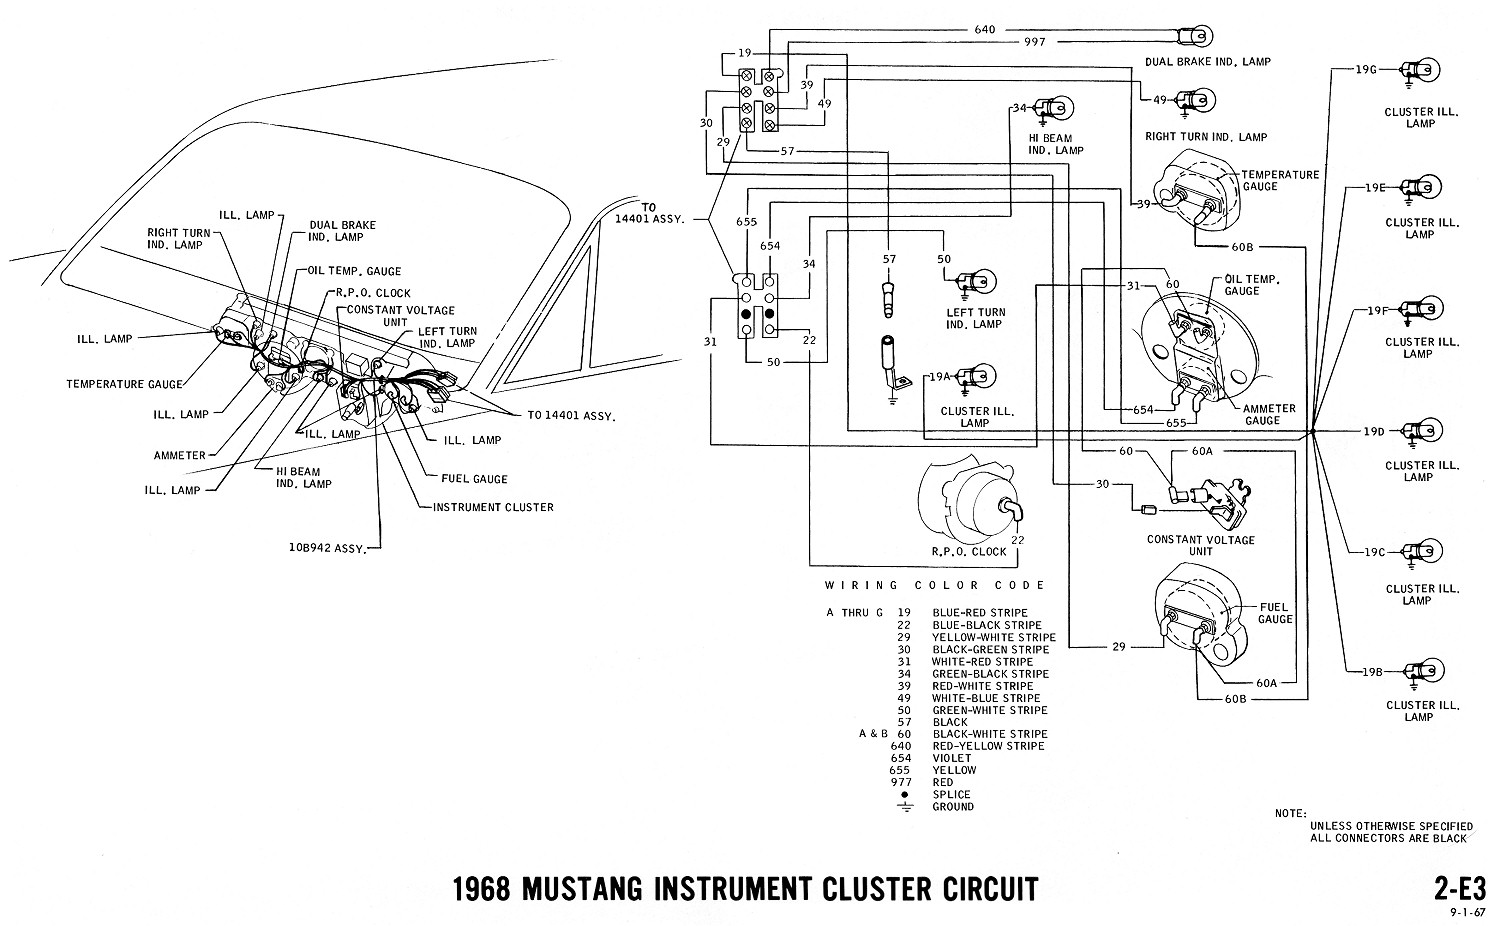 65 mustang ignition switch wiring diagram 1966 mustang